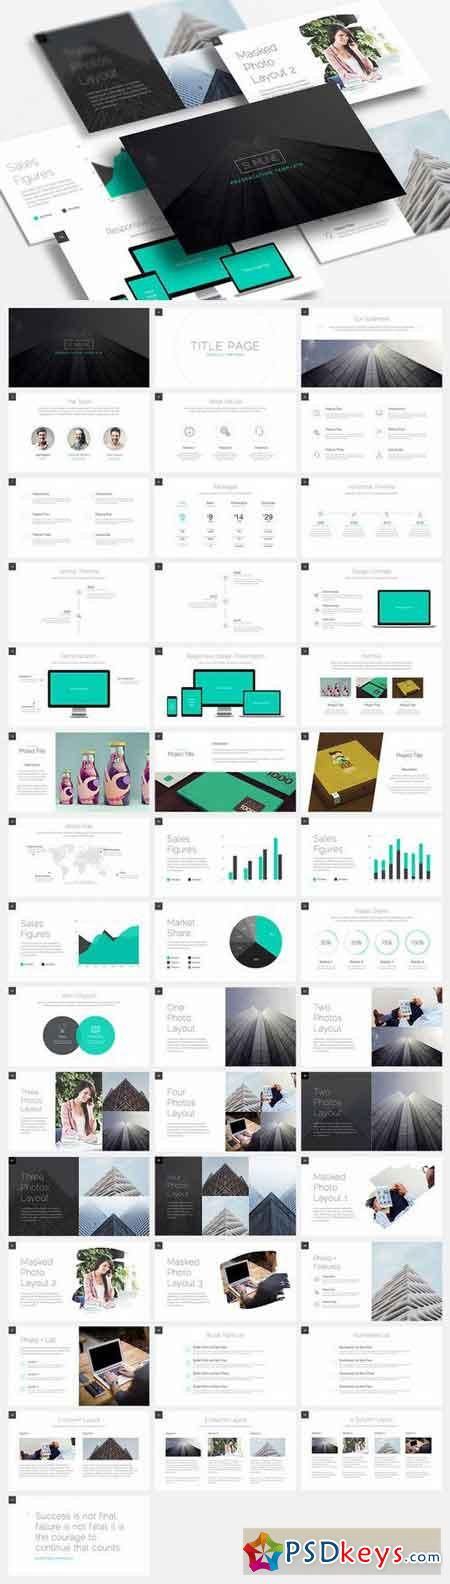 Slimline  Keynote Template   Free Download Photoshop